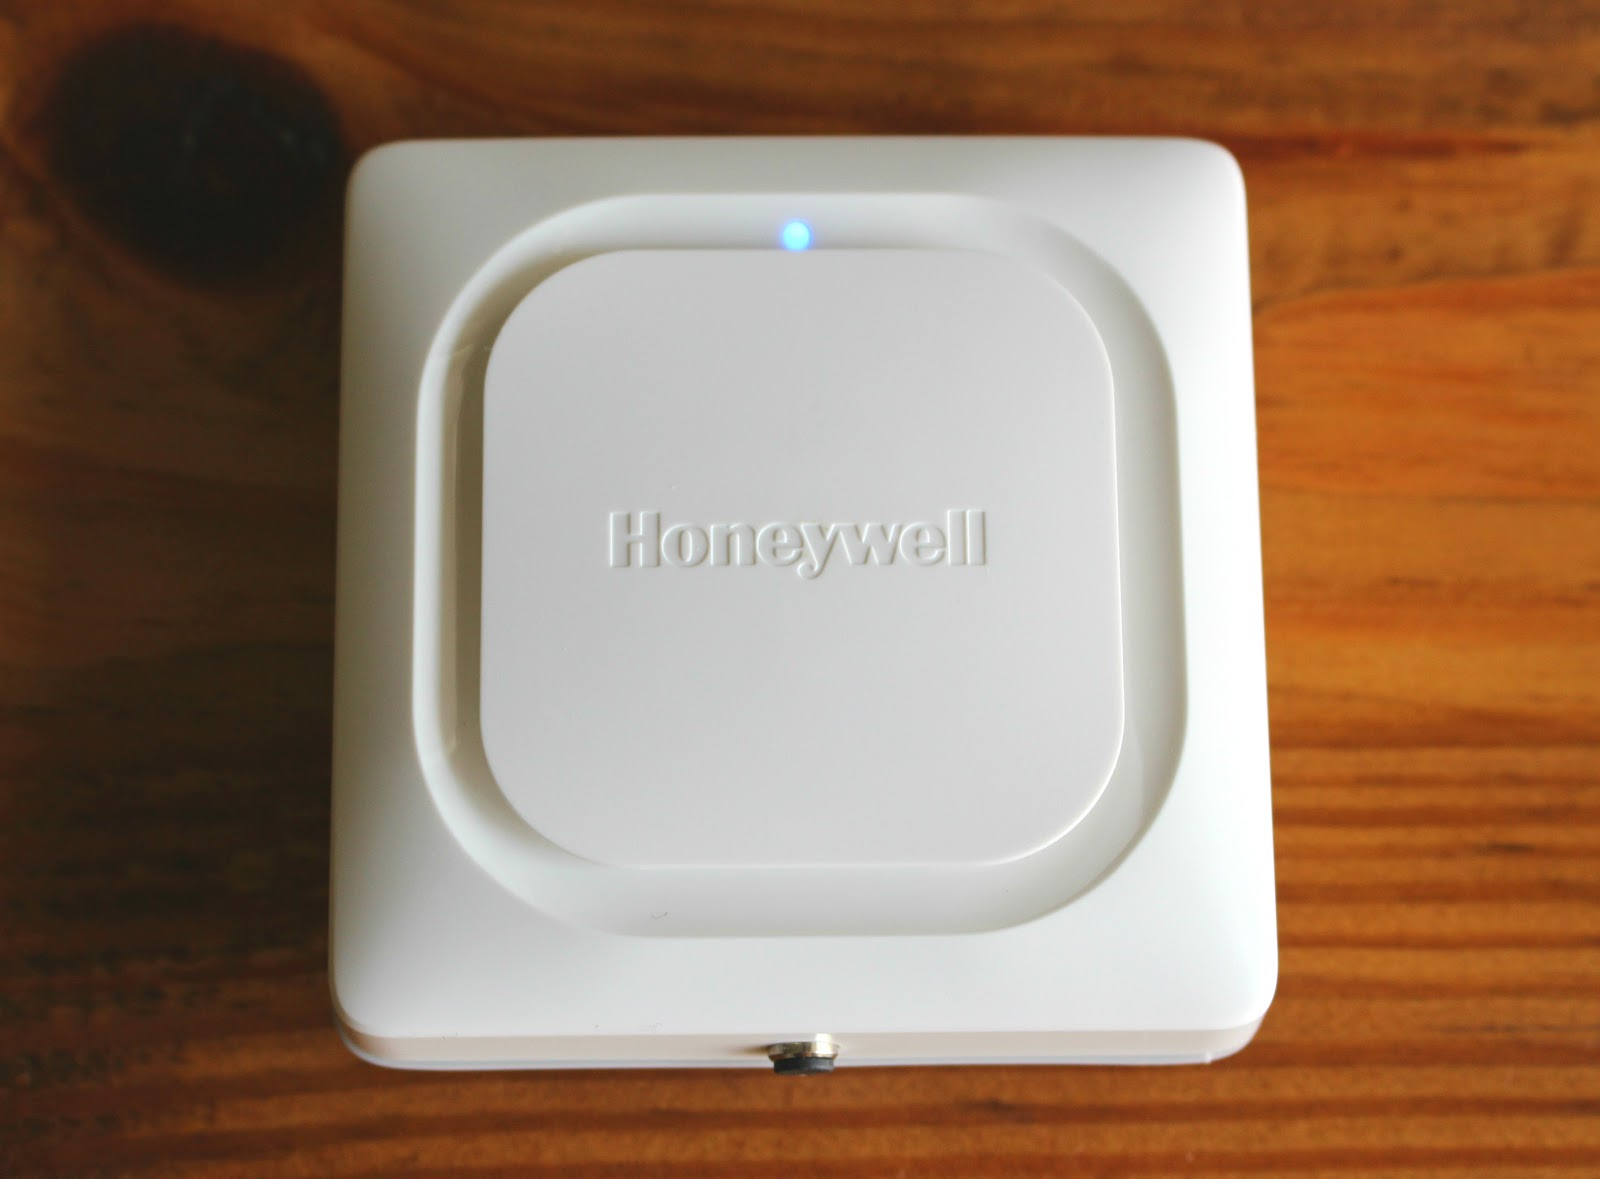 Honeywell-Wifi-Leak-Blue.JPG